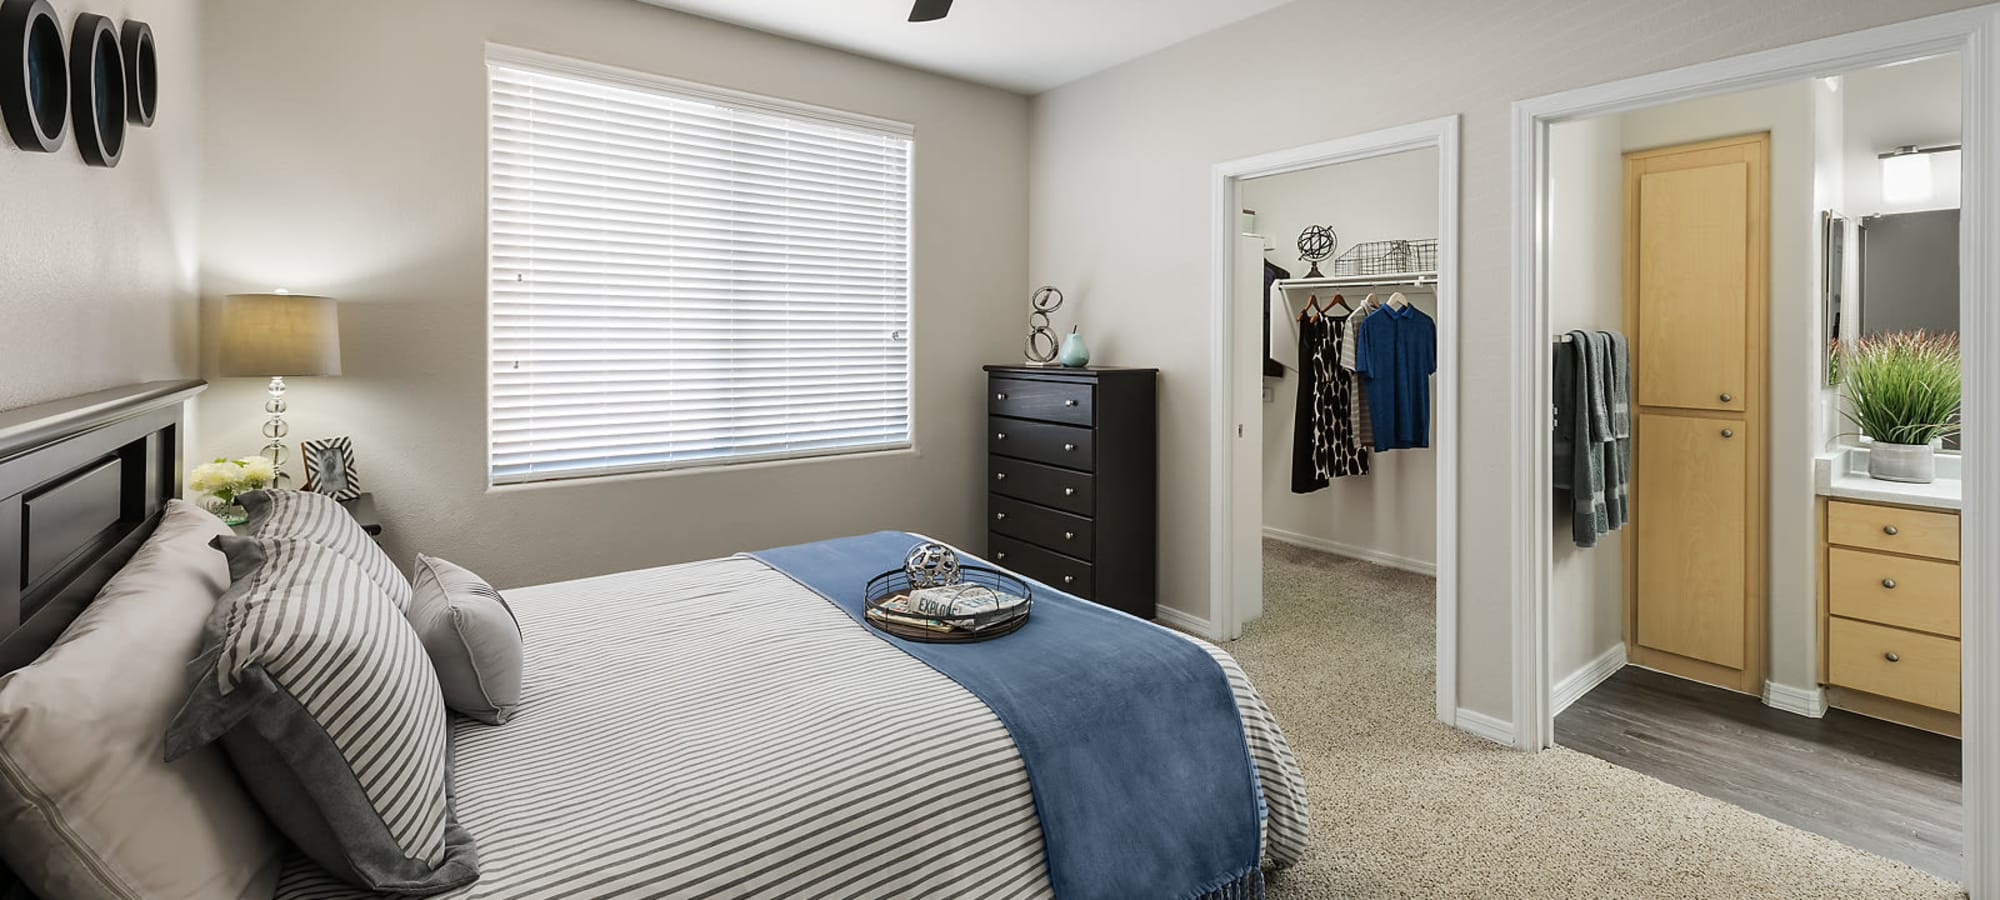 Bedroom with walk in closets at Laguna at Arrowhead Ranch in Glendale, Arizona